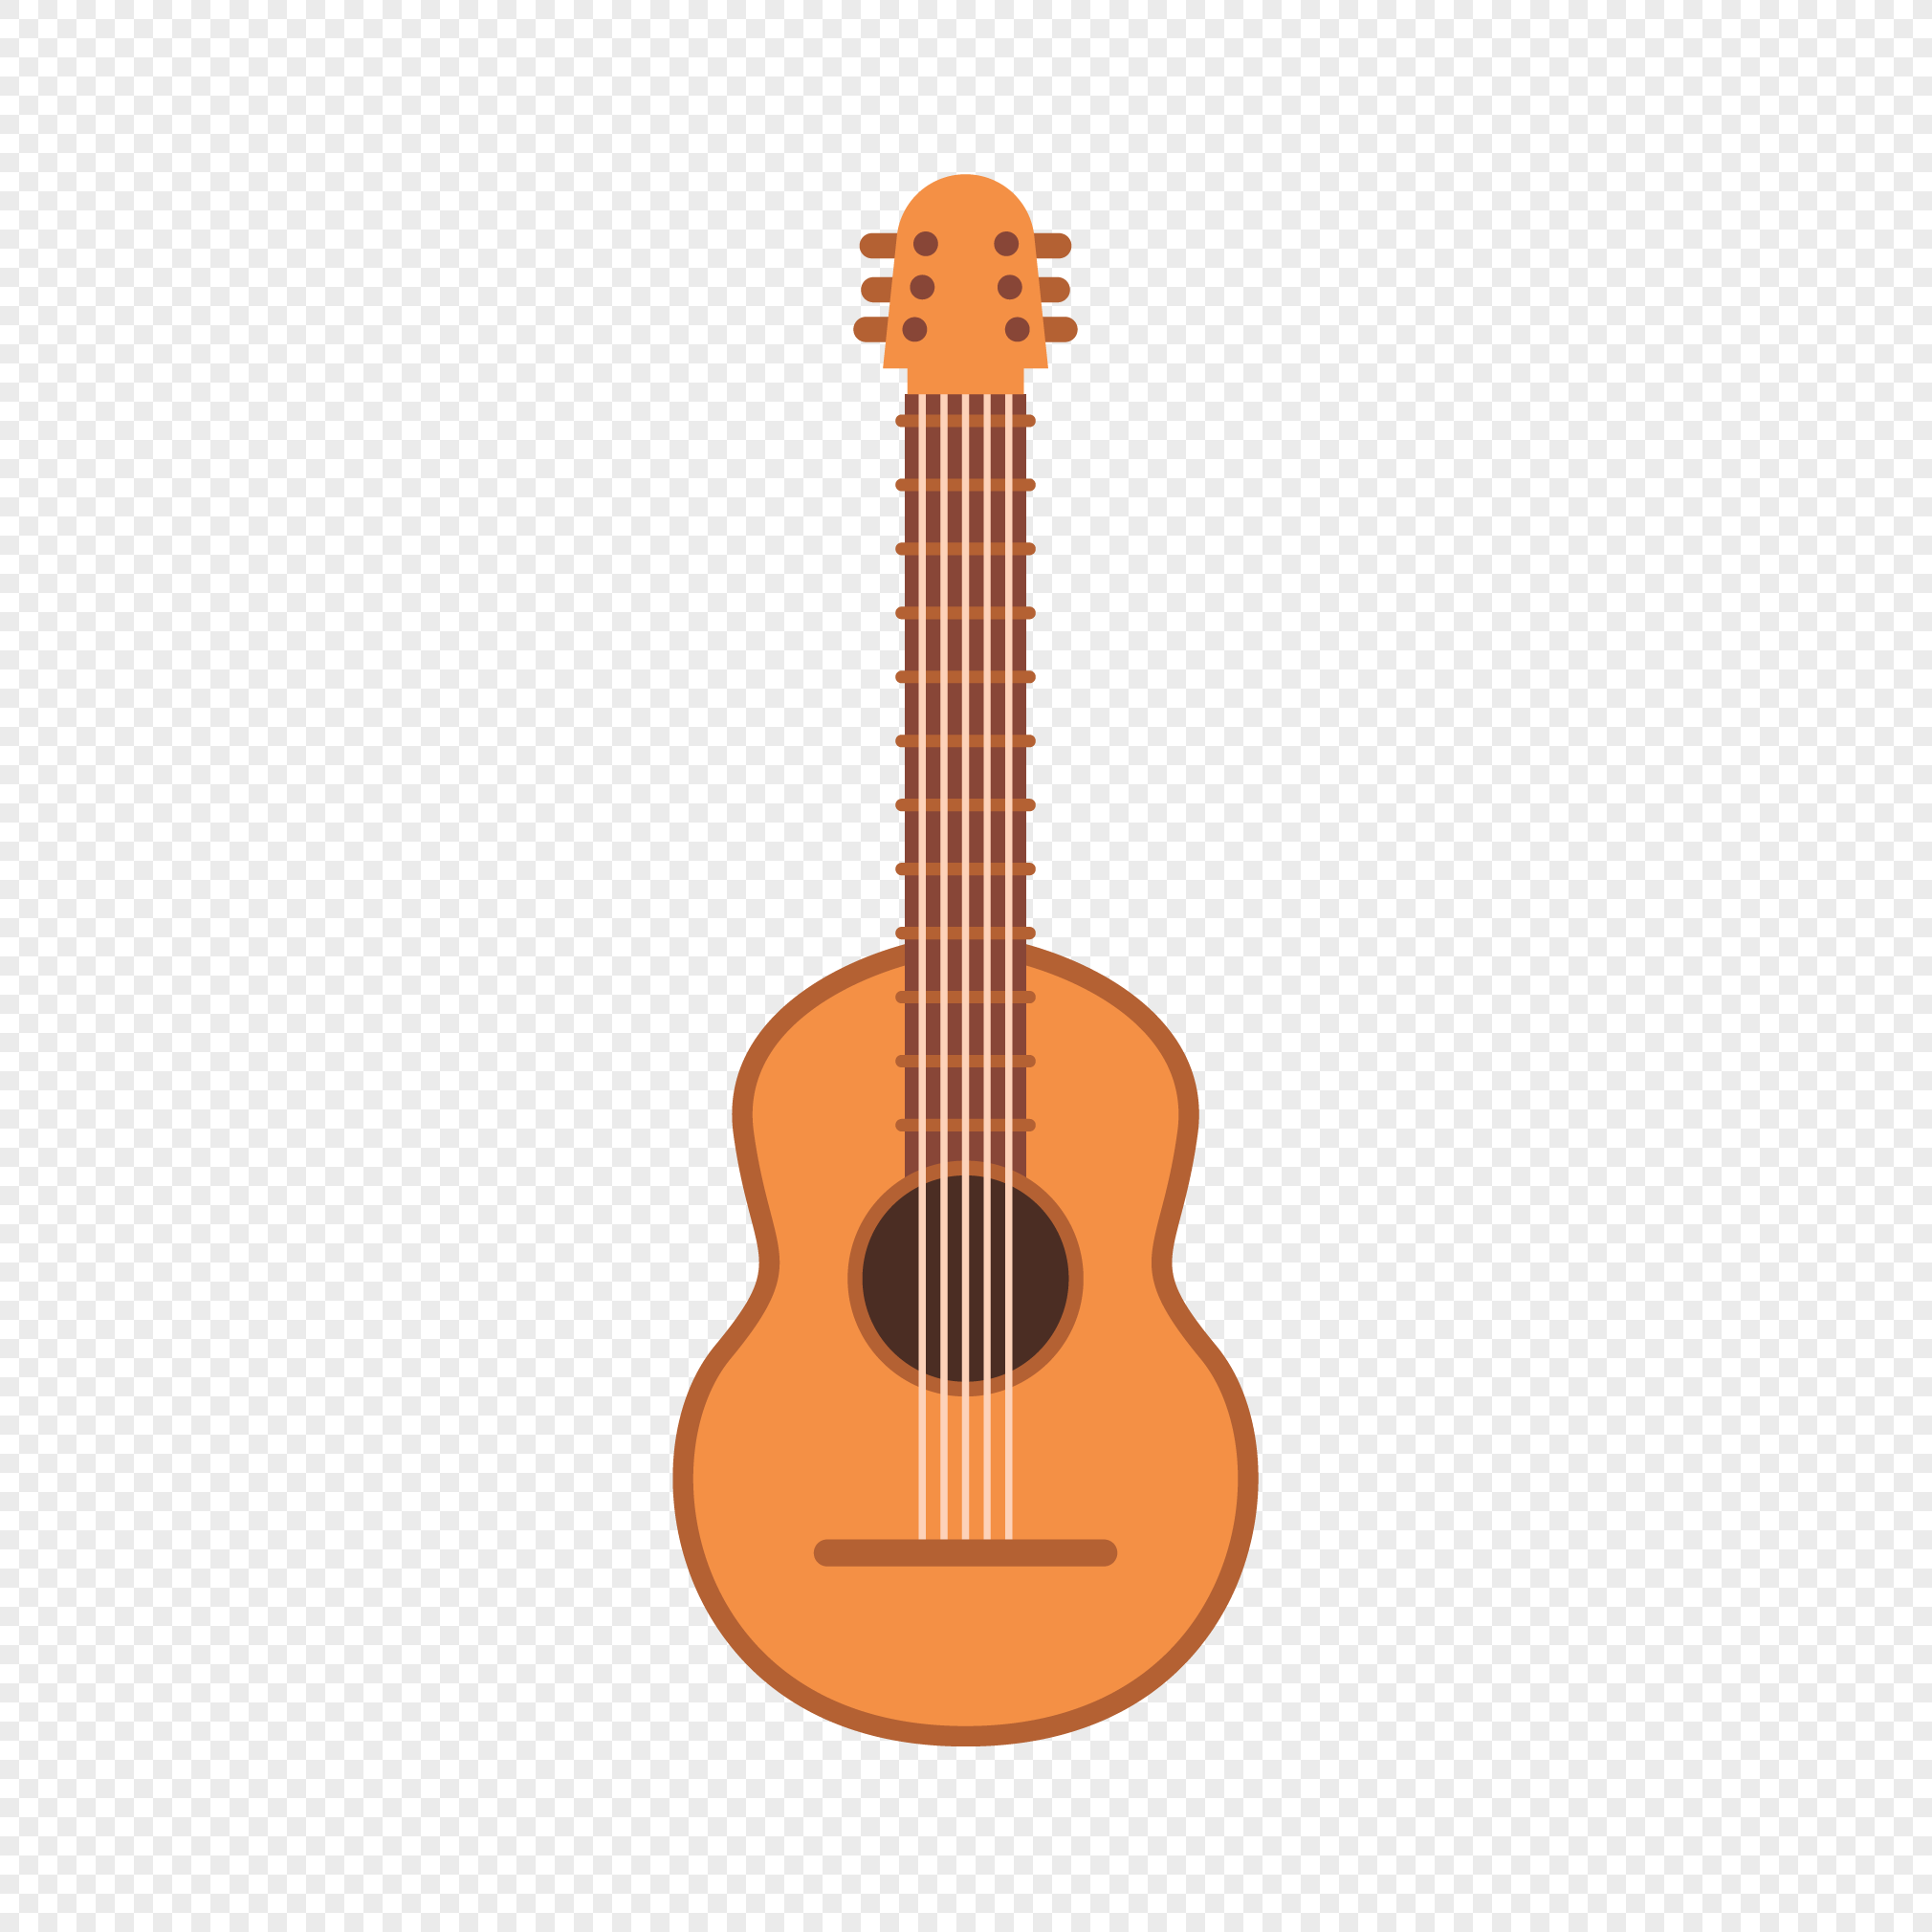 2020x2020 Guitar Vector Png Image Picture Free Download 400383285